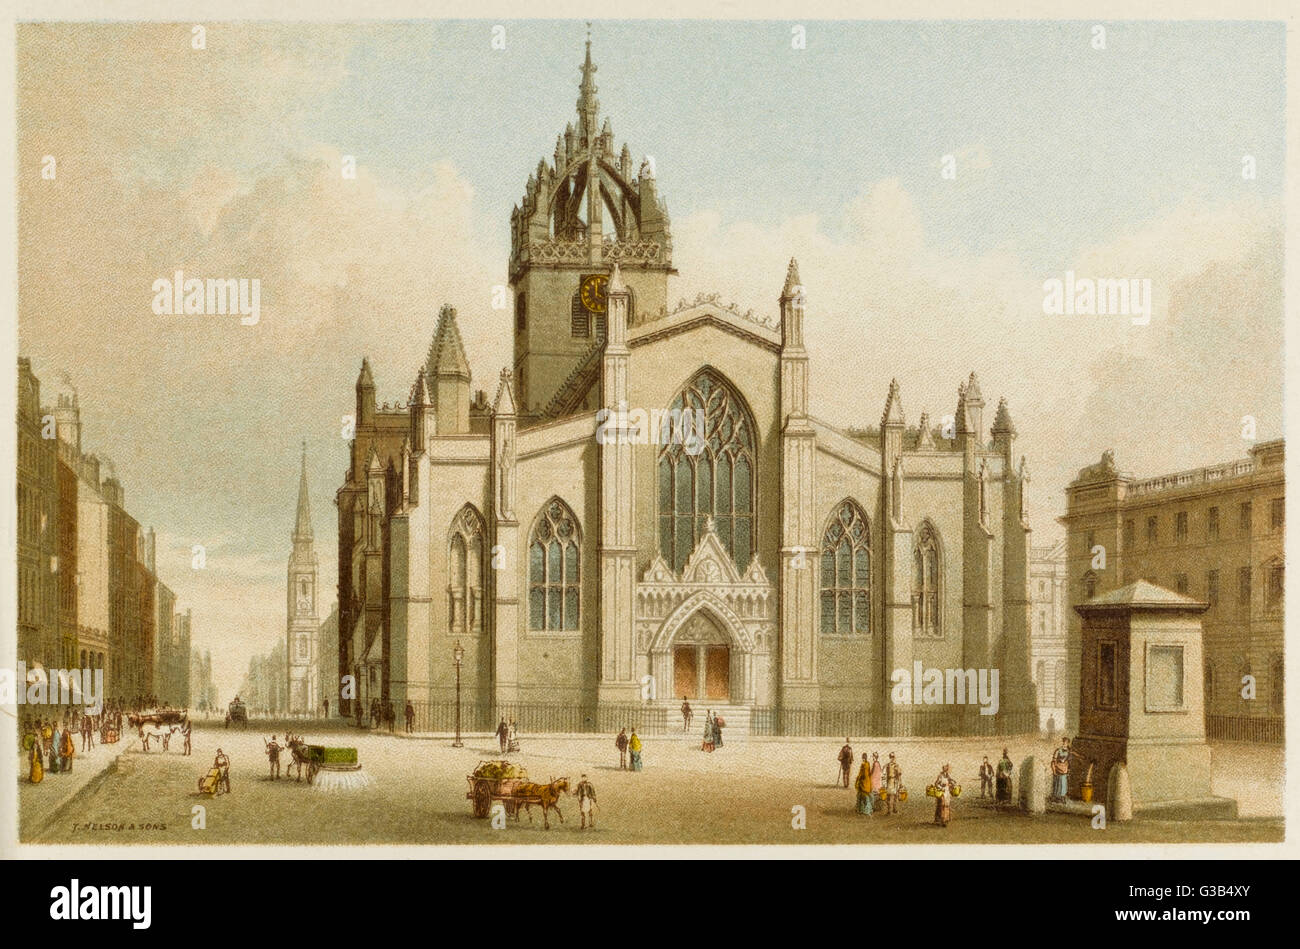 Edinburgh:  St Giles' Cathedral        Date: 1880s - Stock Image